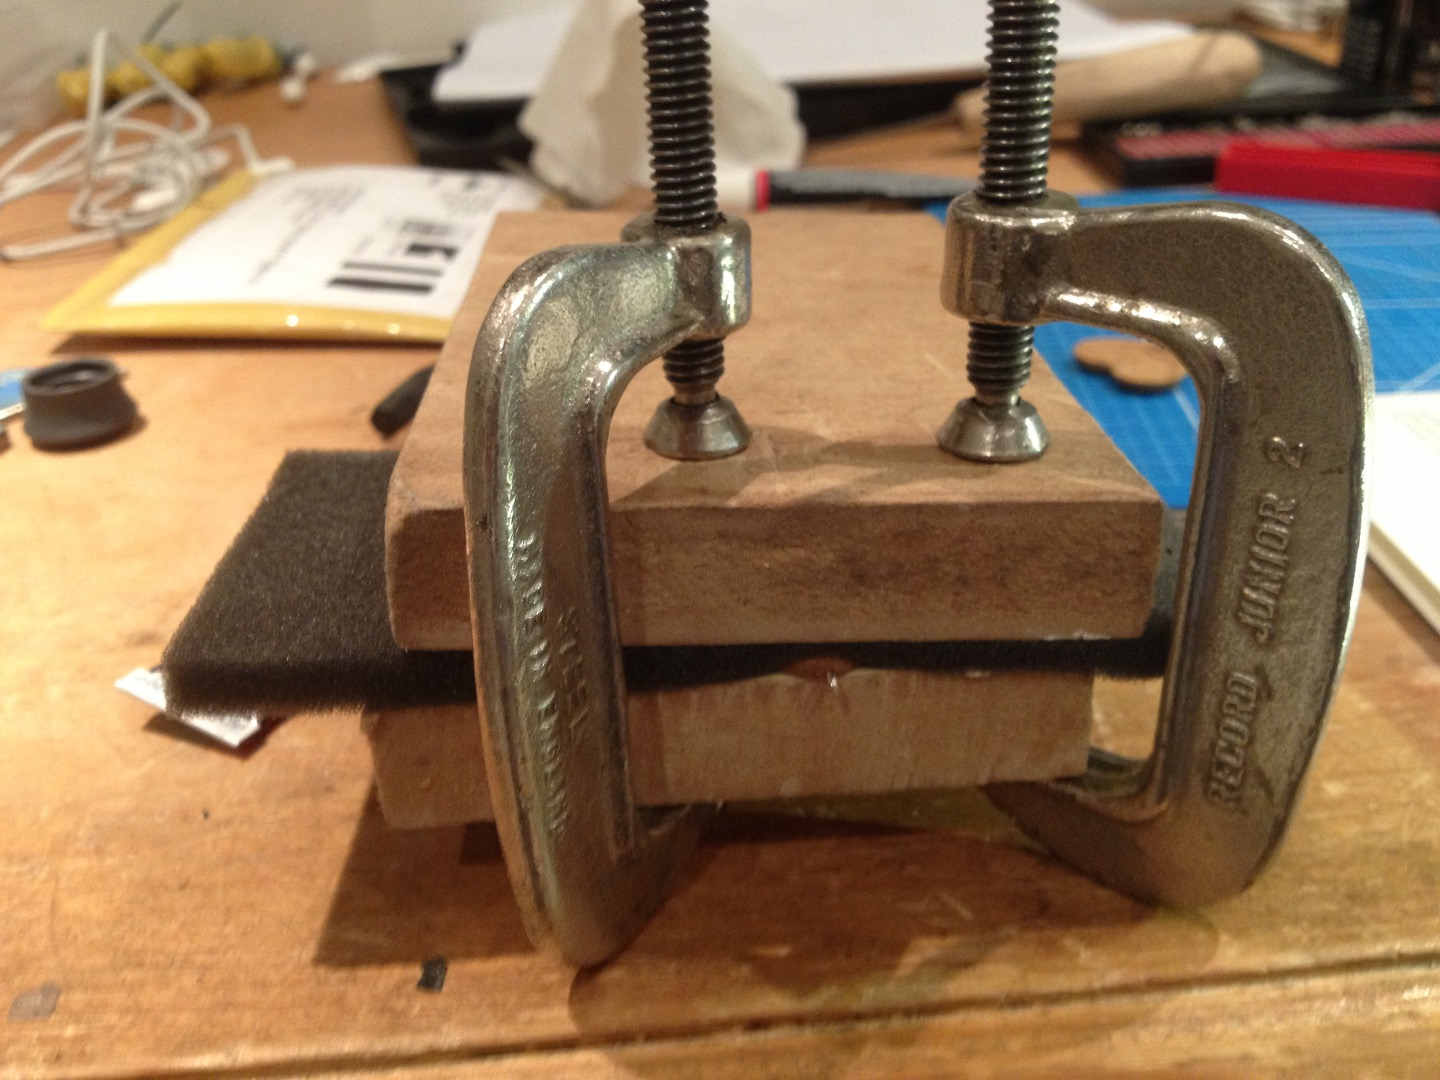 Picture of Final Glue Up